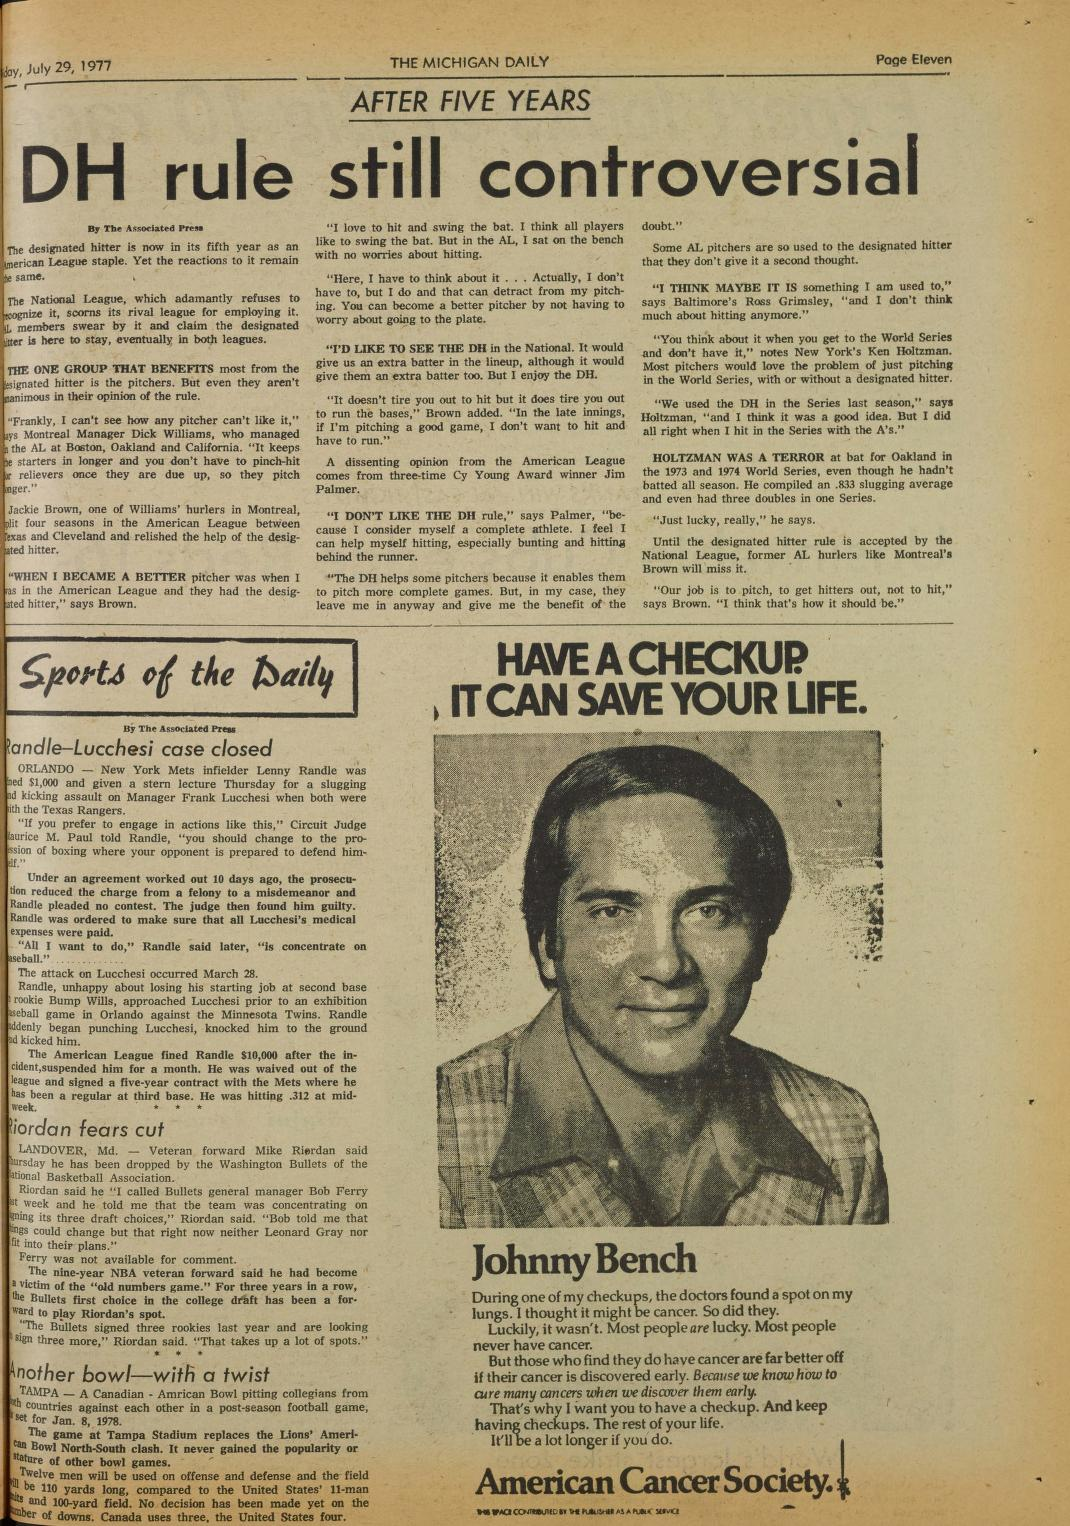 Michigan Daily Digital Archives - July 29, 1977 (vol  87